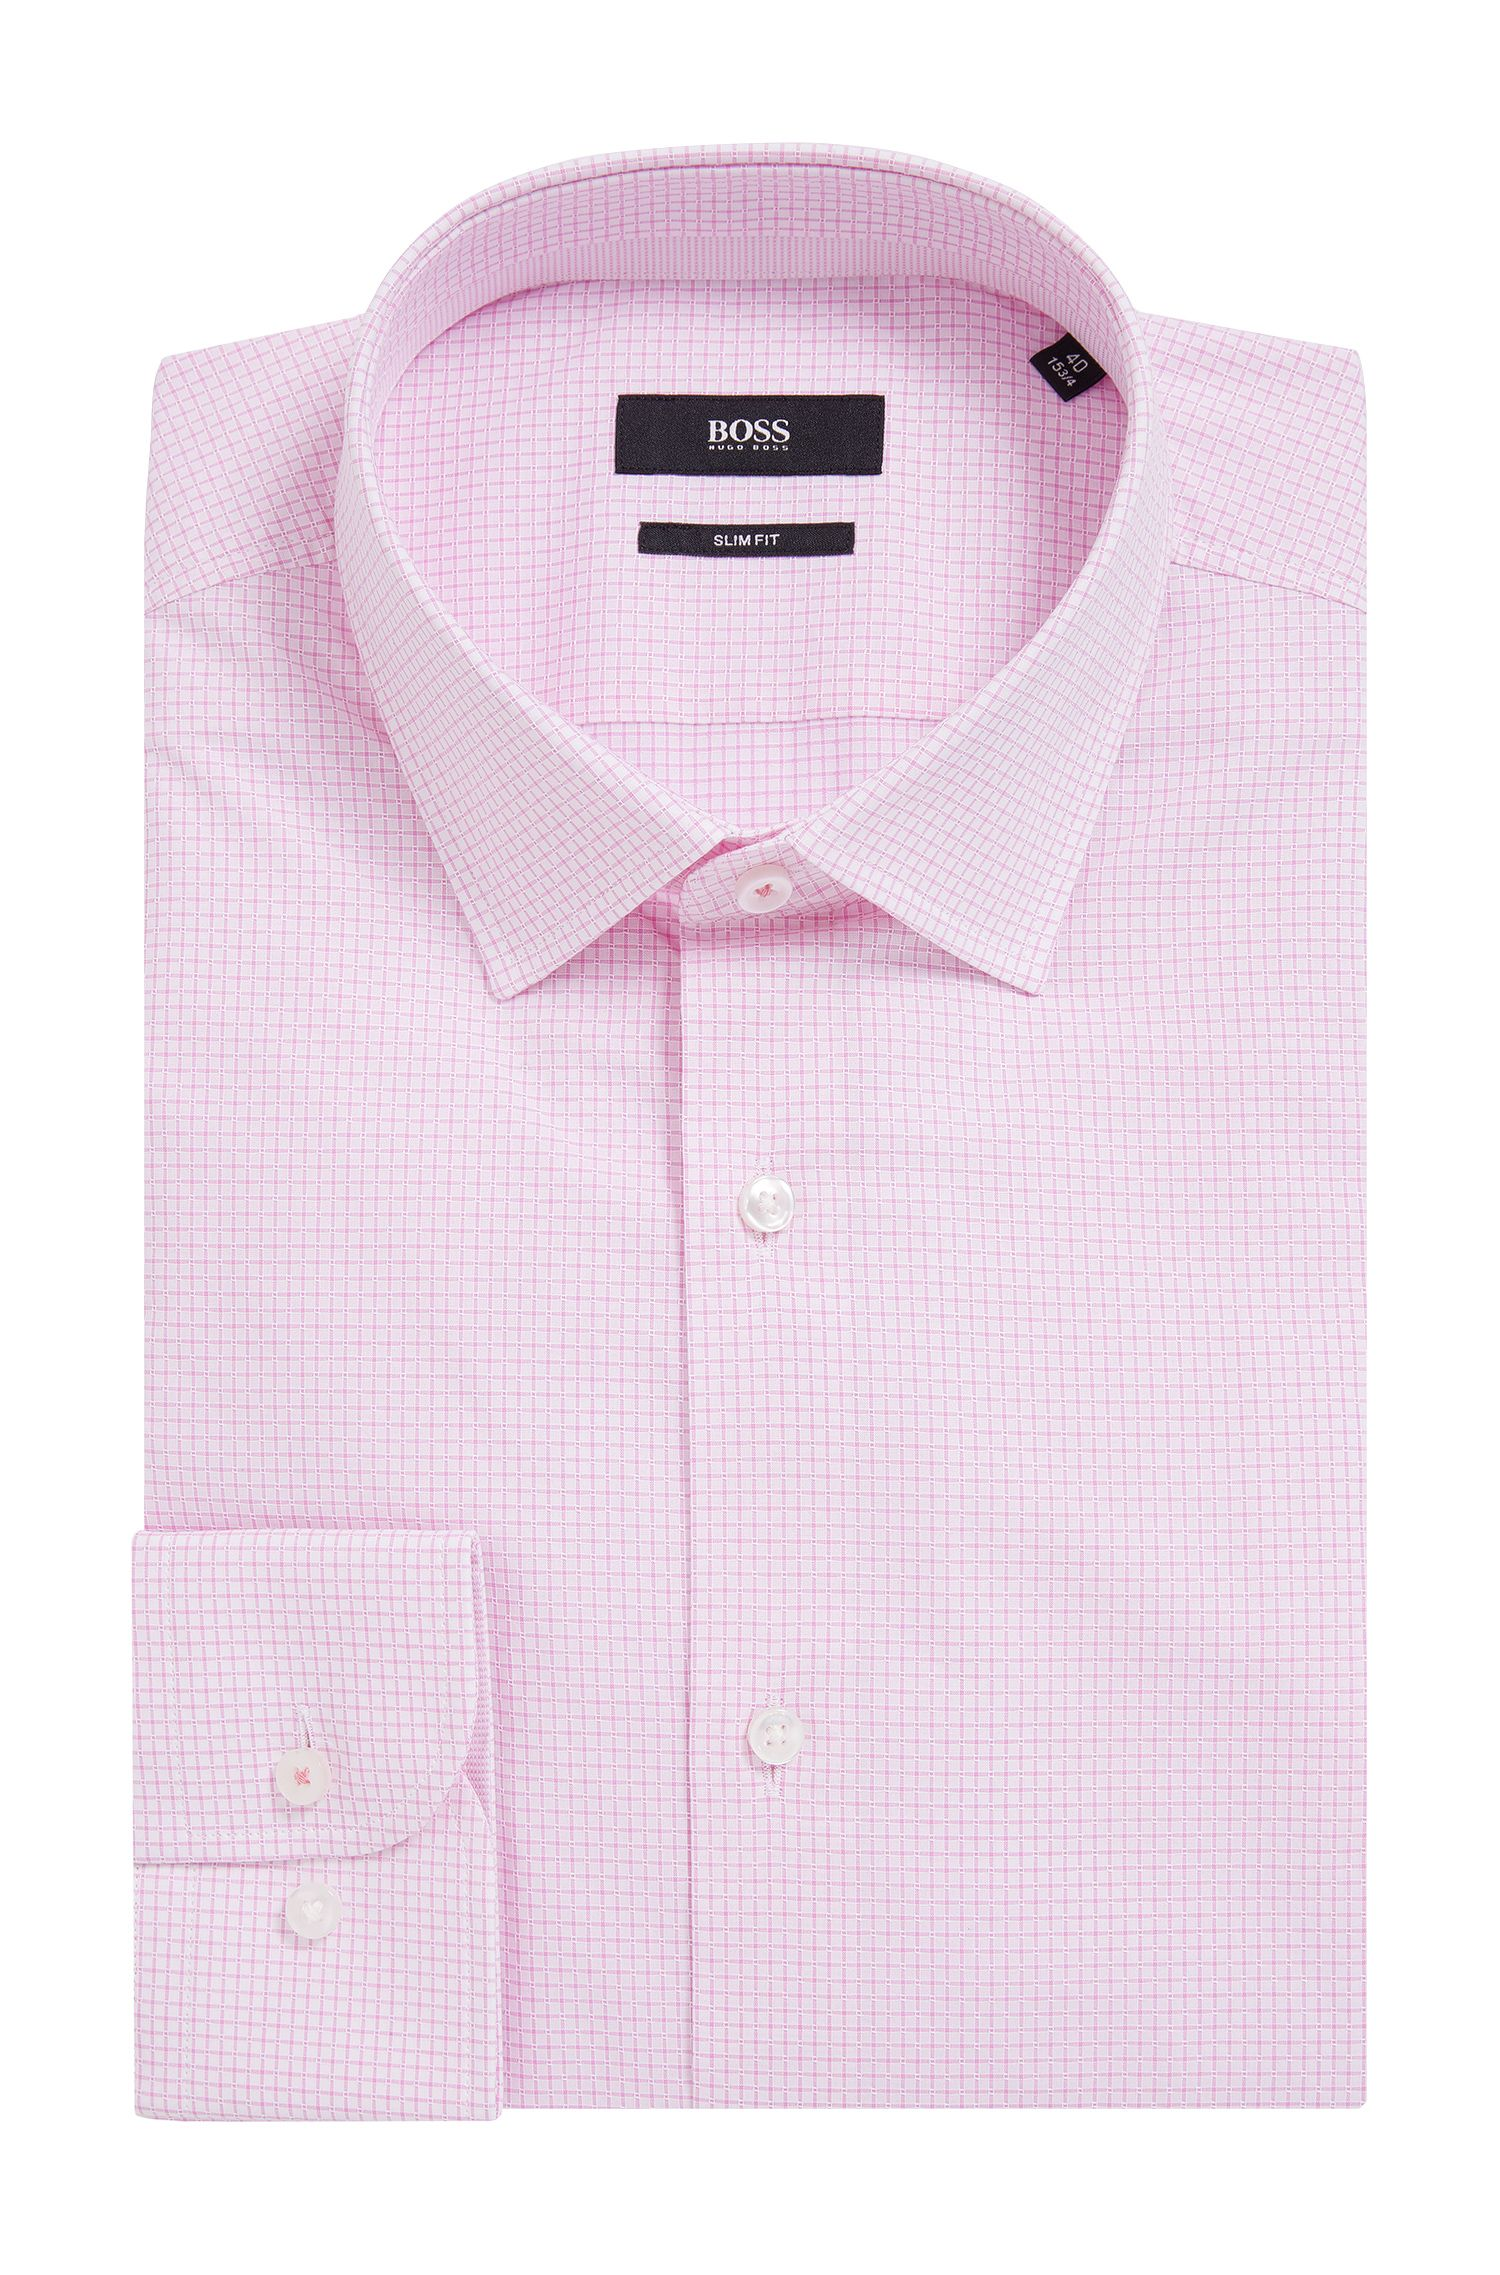 Check Cotton Dress Shirt, Slim Fit | Jesse